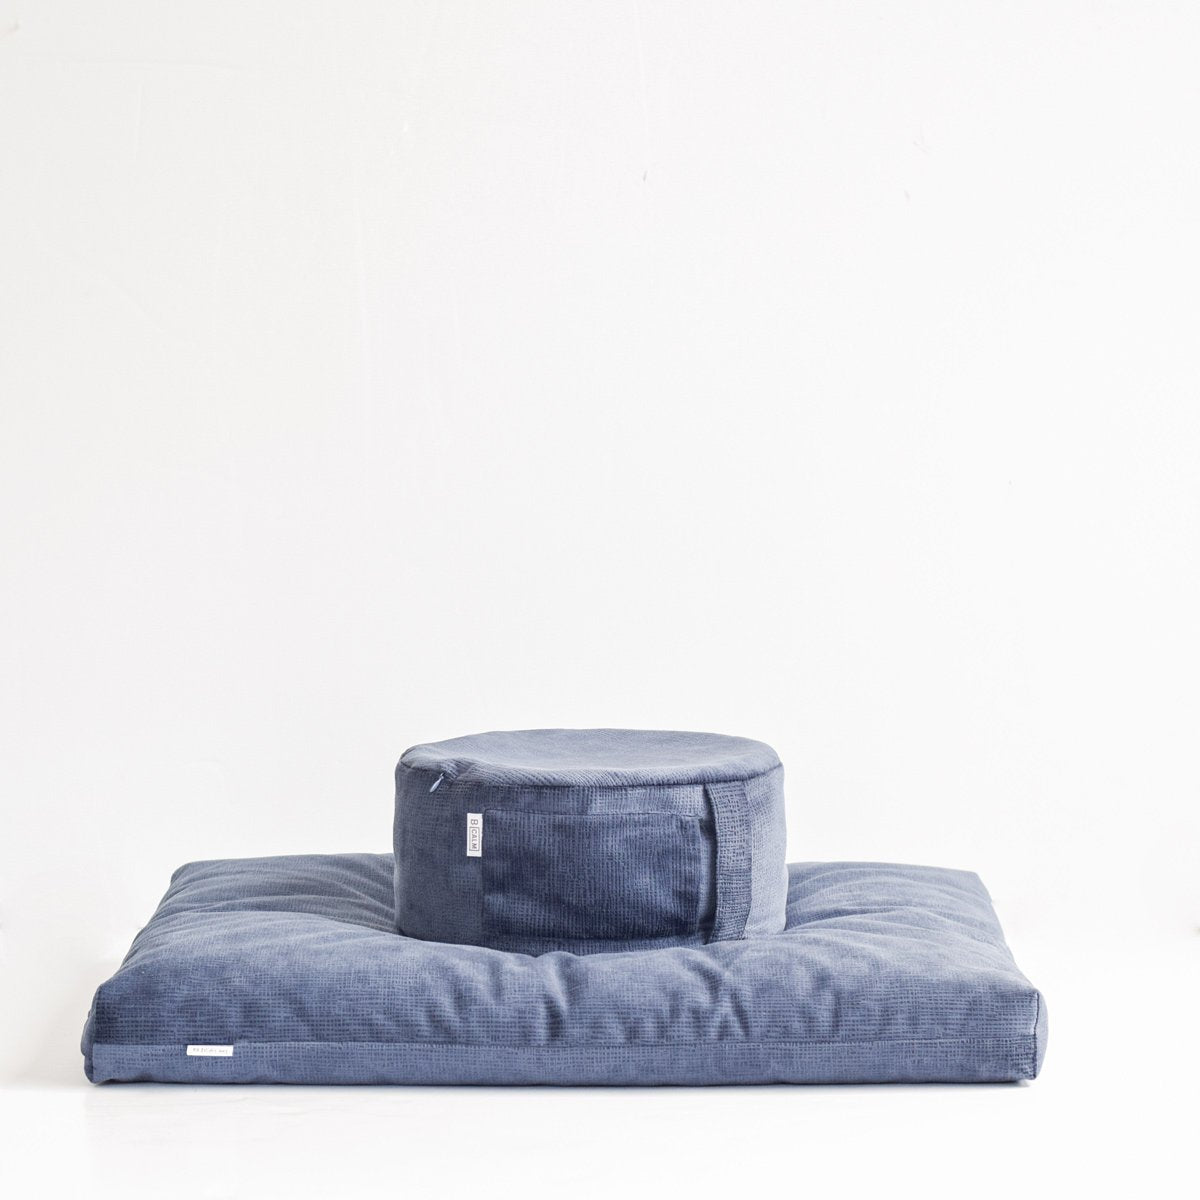 The Calm Meditation Cushion - Owl